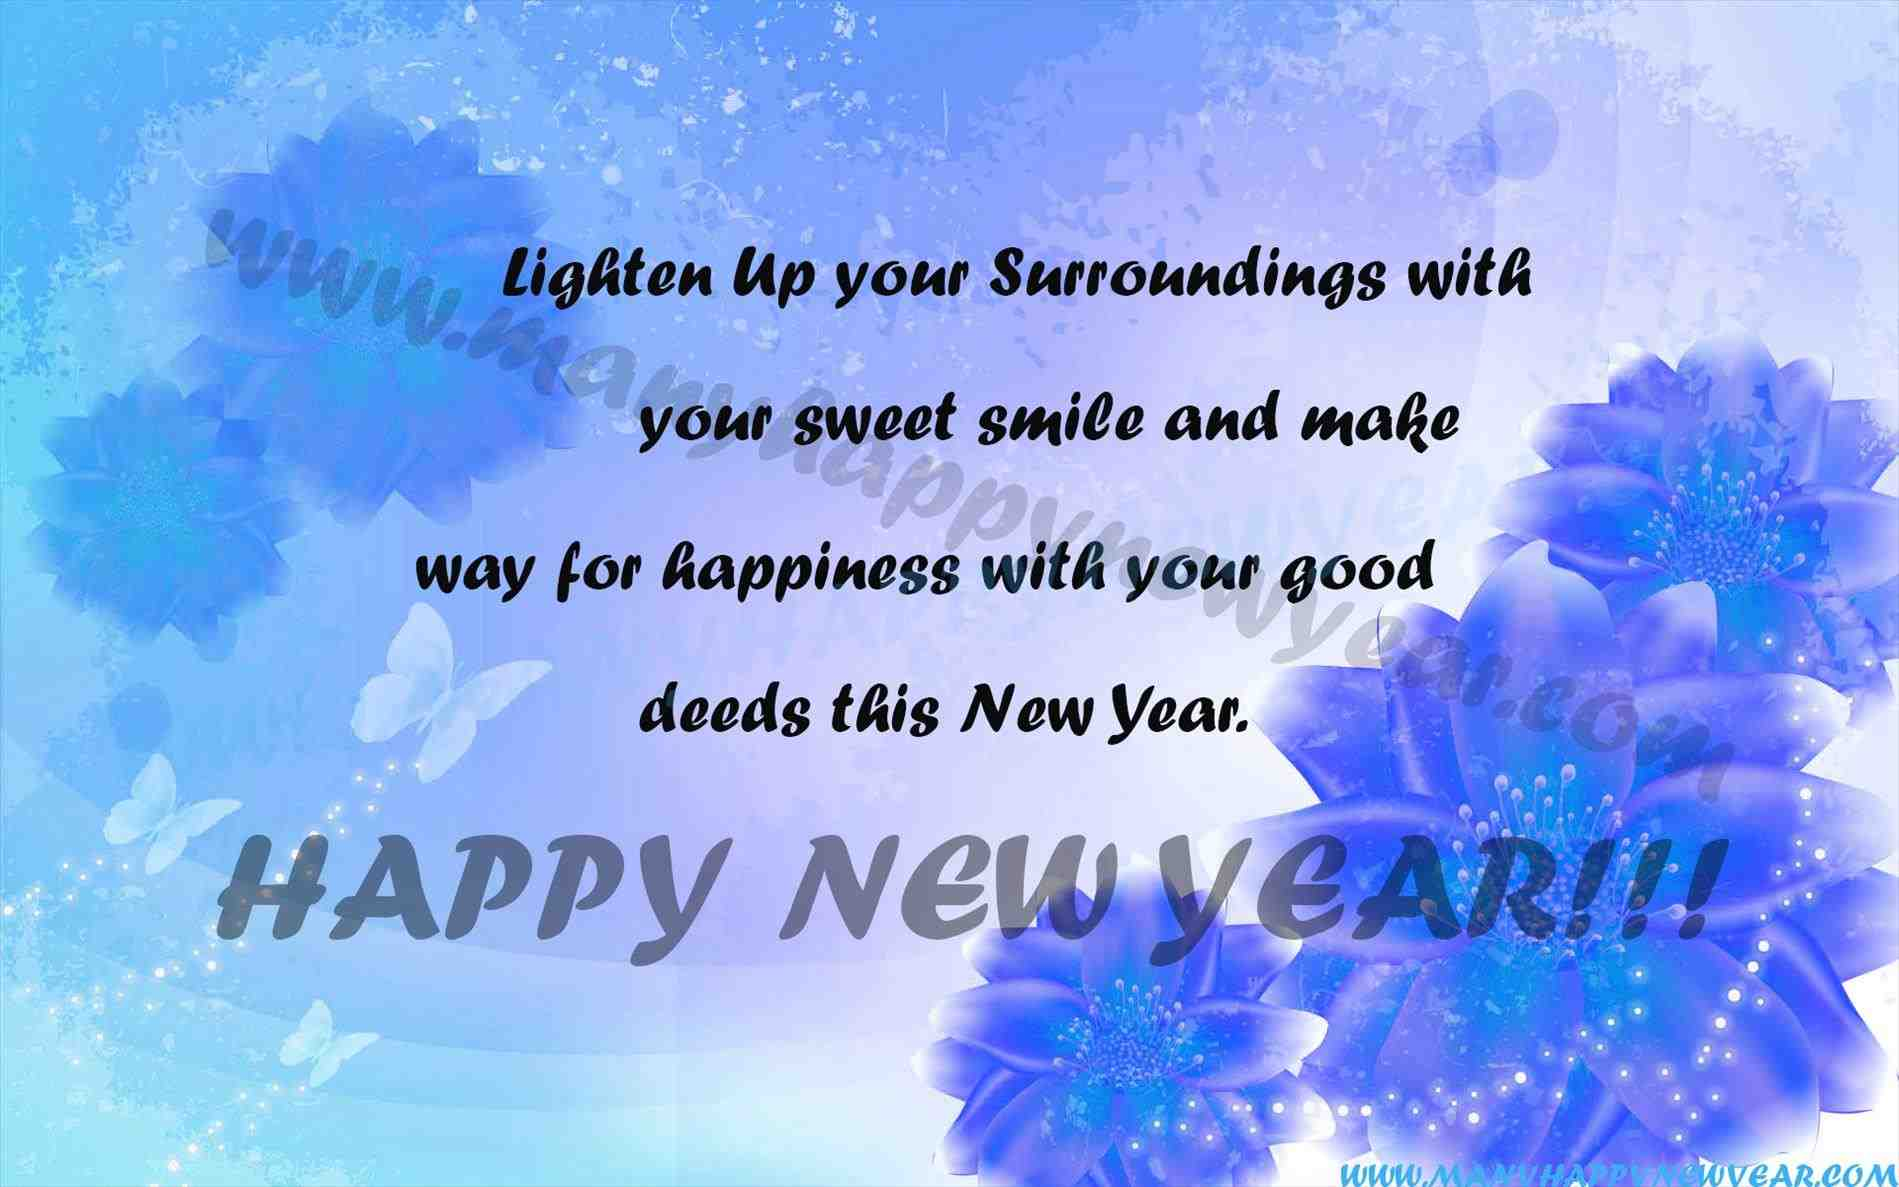 new year messages for wife new year shayari for husband u wife rhpinterestcom desktop romantic messages love quotes with my hdjpg